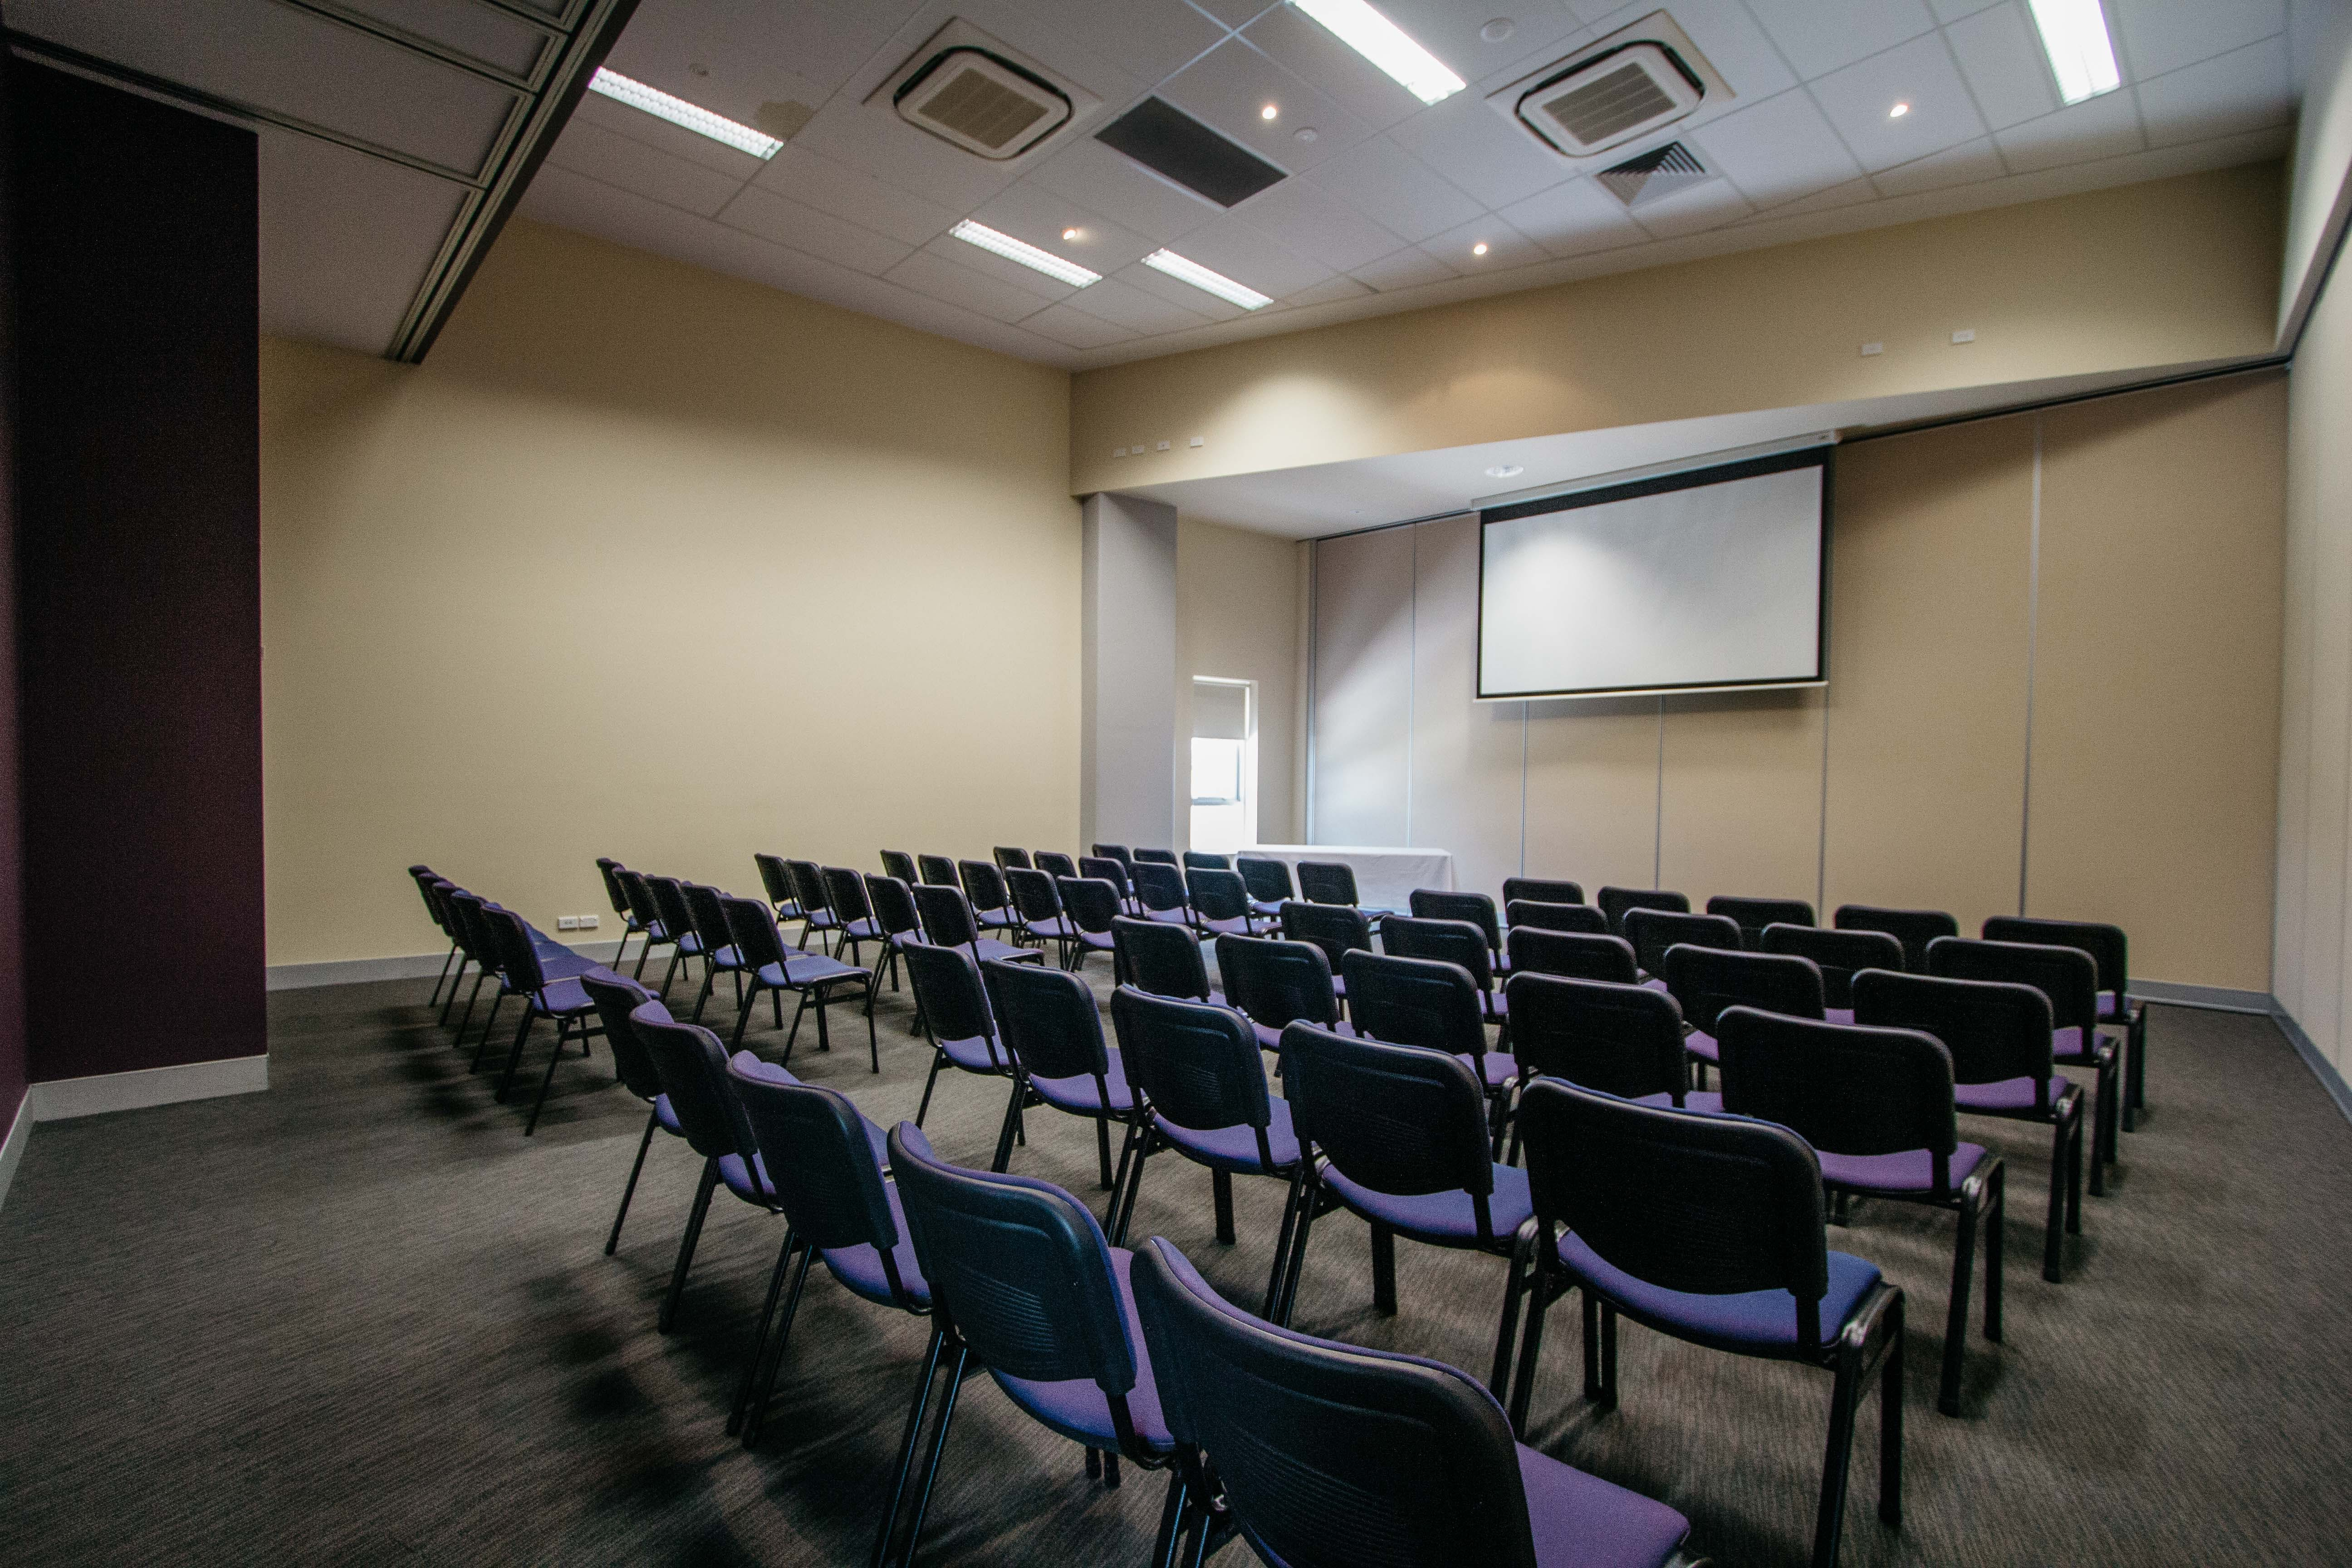 With various room sizes available, this space provides complete flexibility, image 1